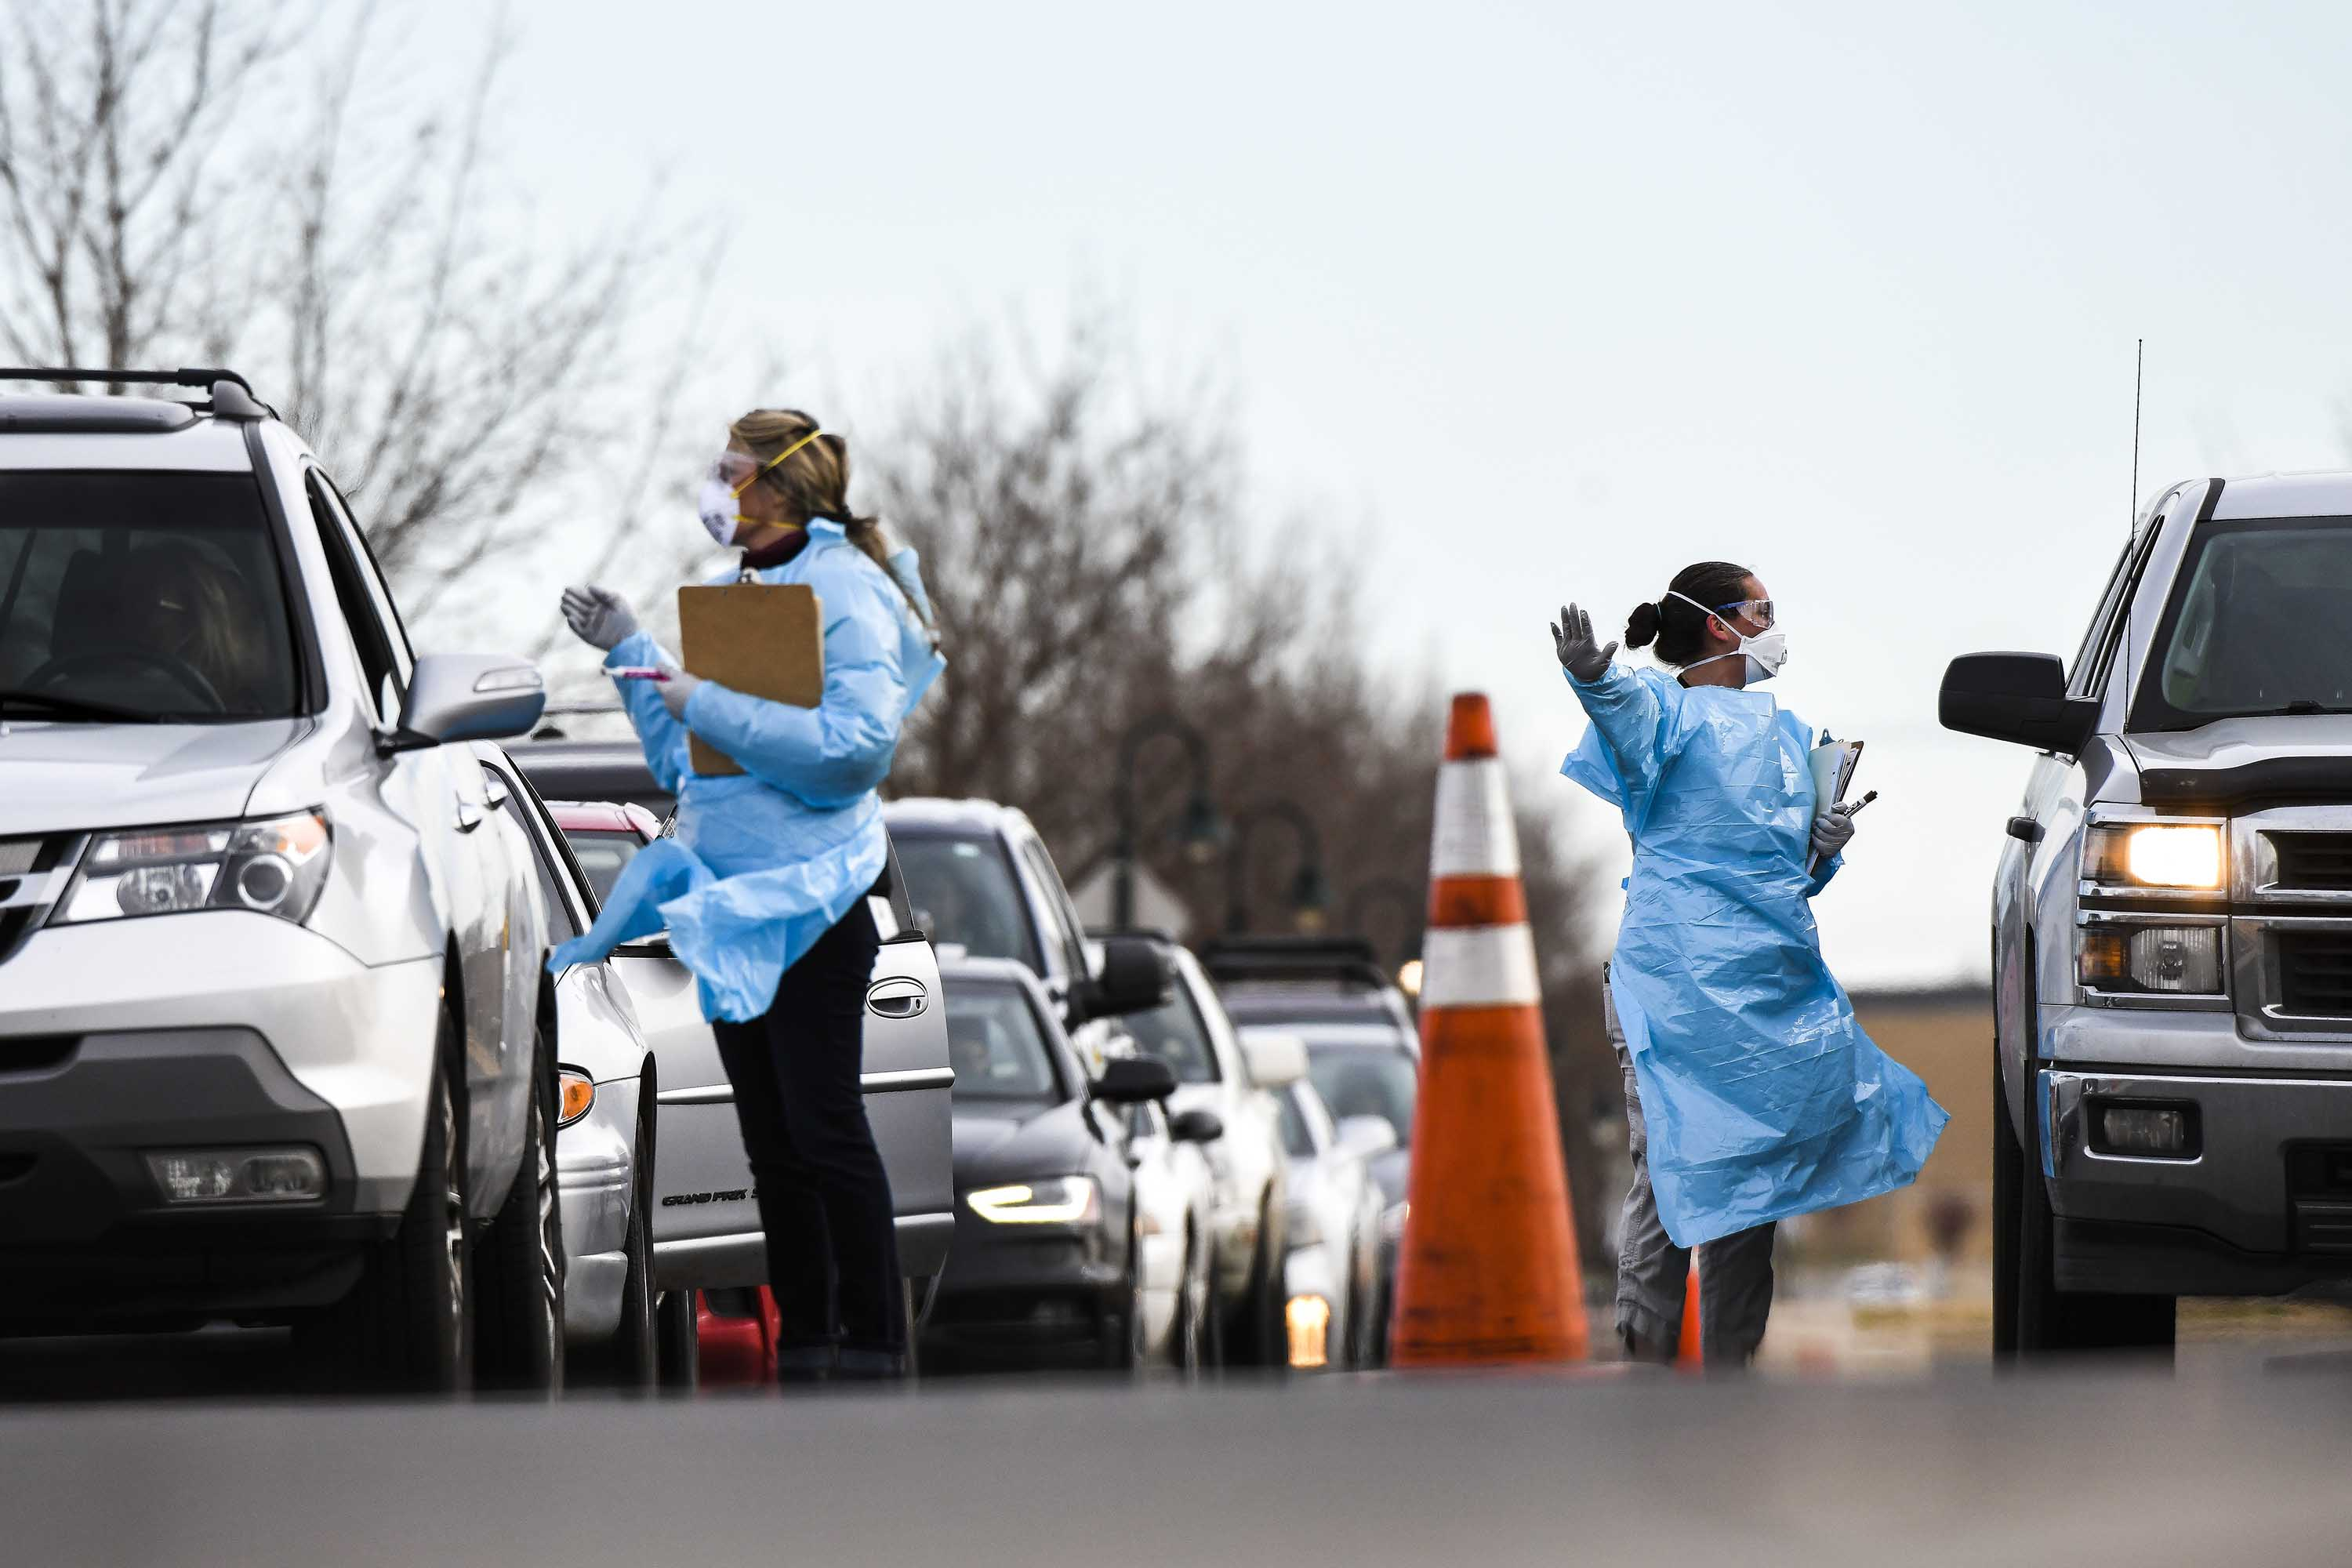 Workers from the Colorado Department of Public Health and Environment check in with people waiting to be tested for coronavirus at the state's first drive-up testing center in Denver, Colorado, on Thursday.